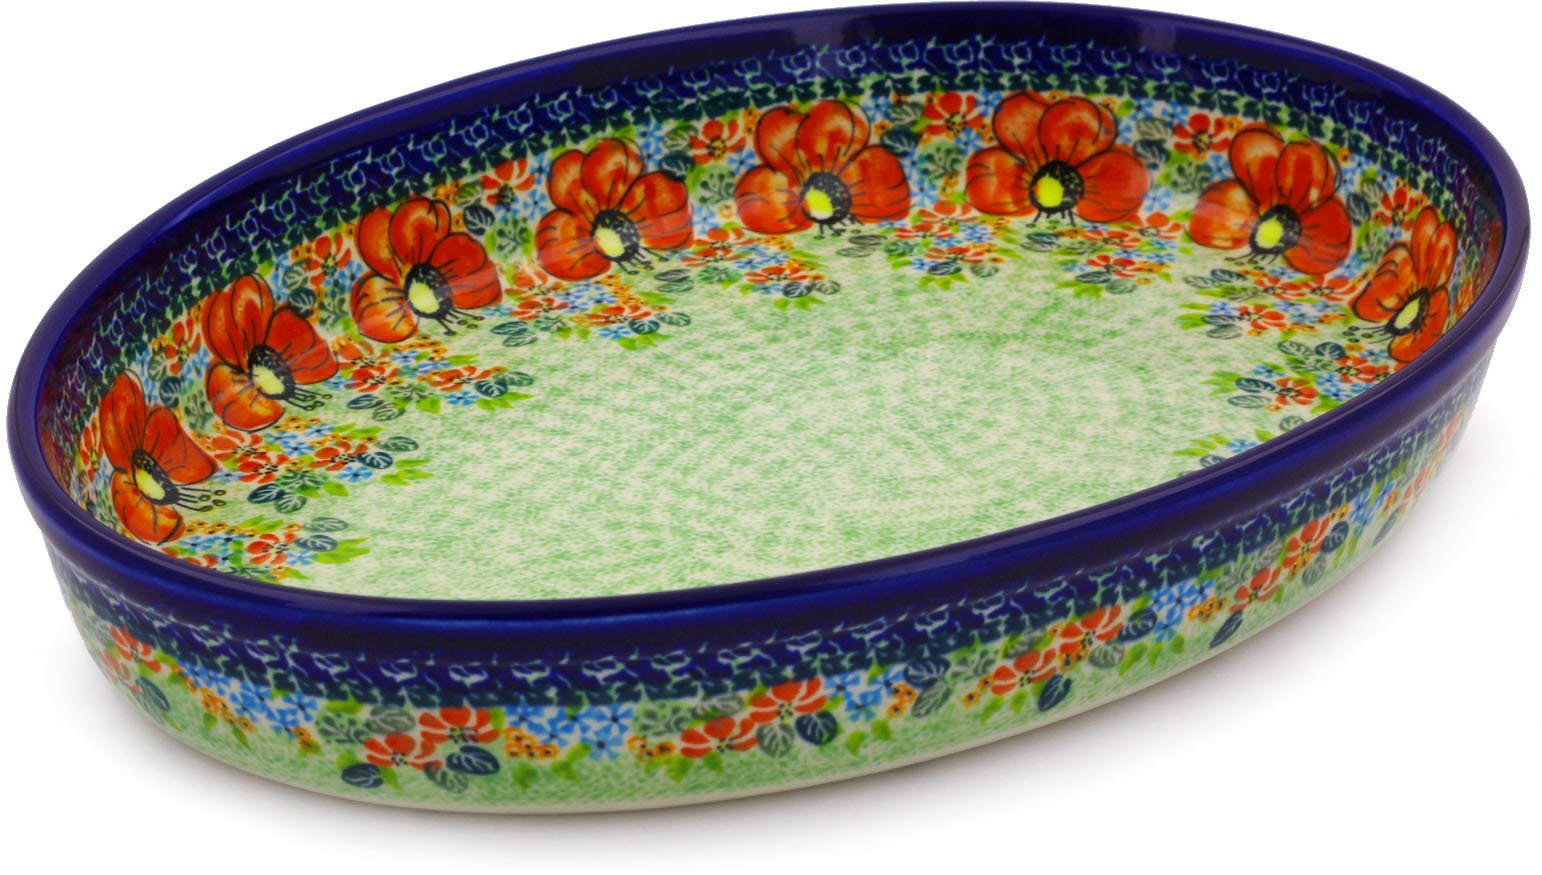 Polish Pottery Oval Baker 14-inch (Garden Meadow) UNIKAT